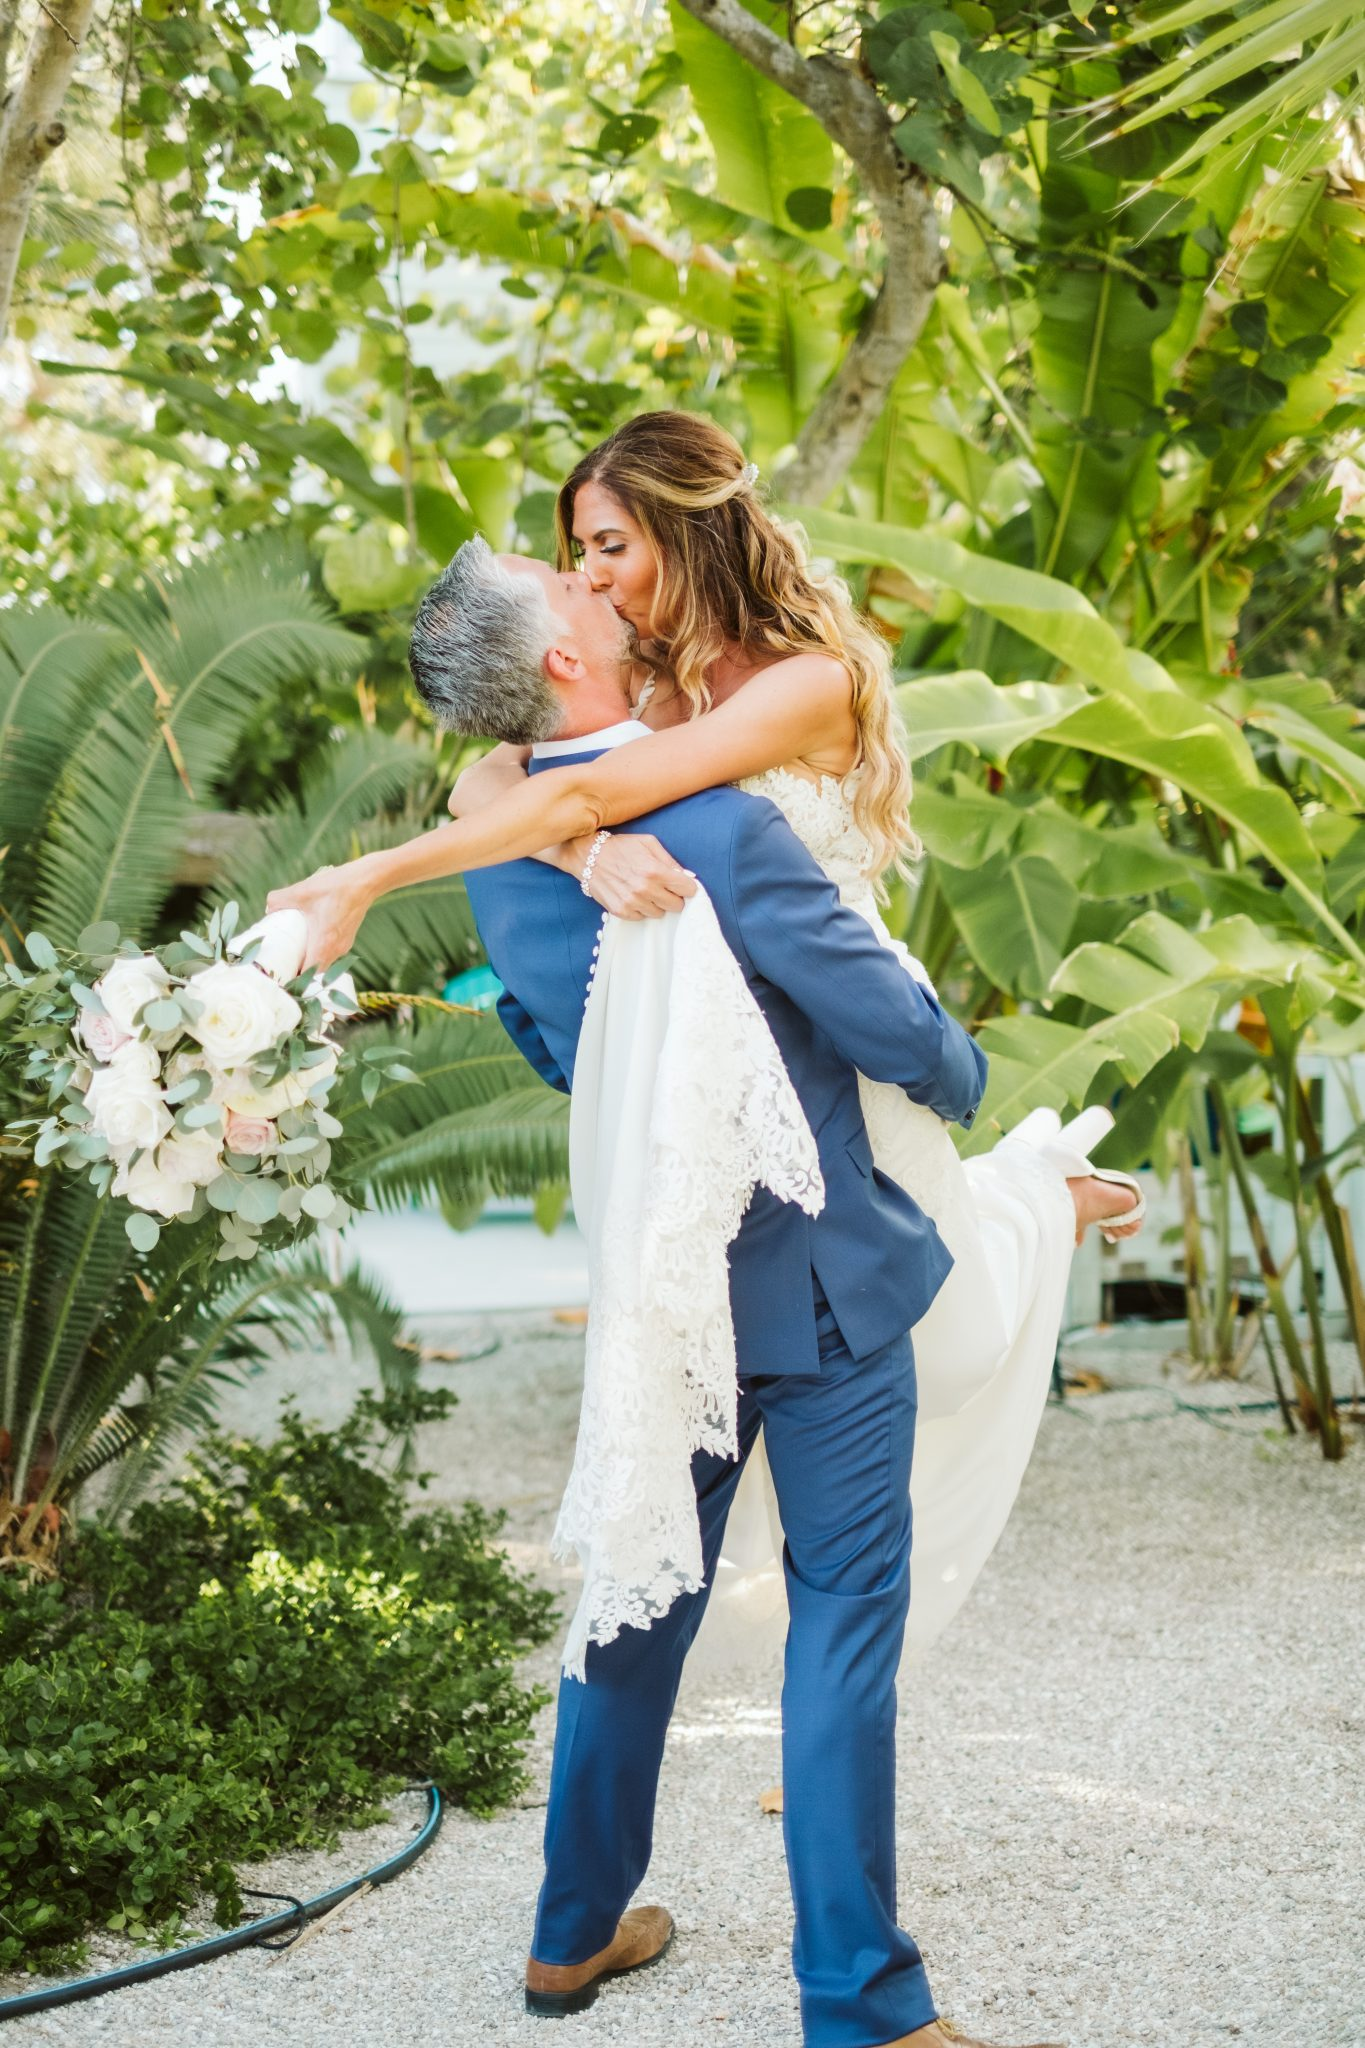 Tampa-Wedding-Photographer_Rebecca-and-Josh_Anna-Maria-Island-Boho-Beach-Wedding_Anna-Maria-Island-FL_01696